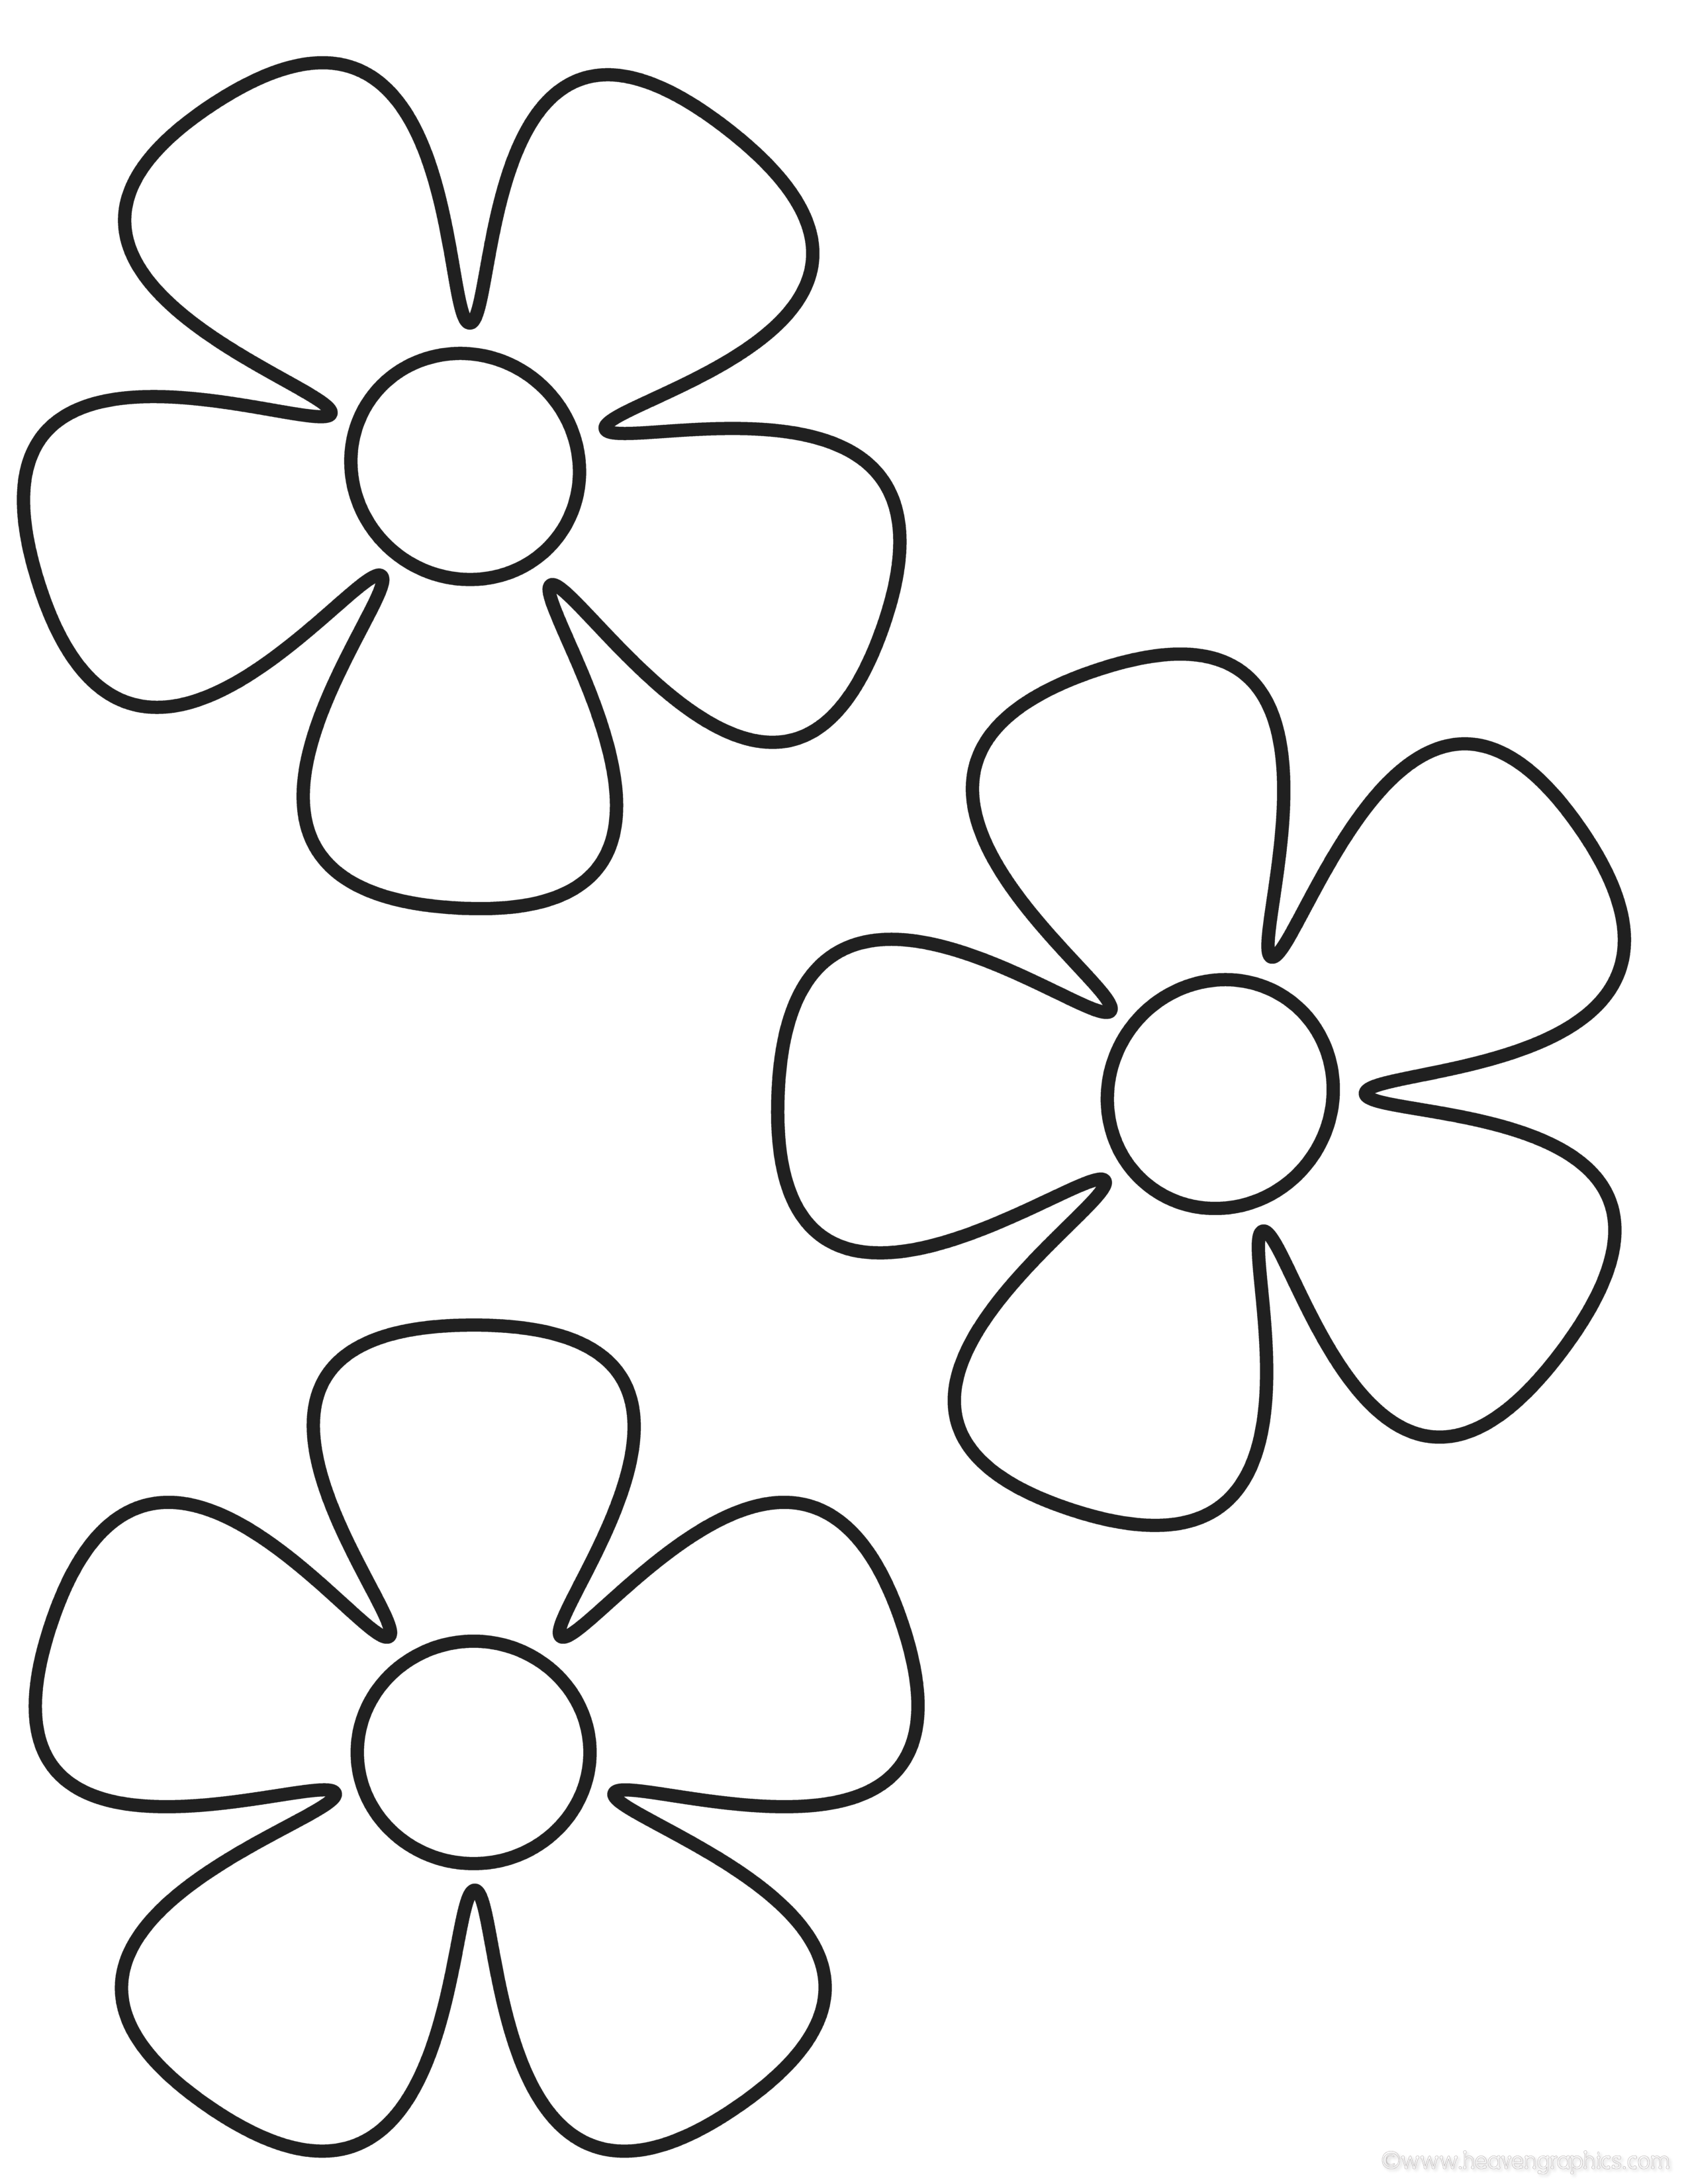 flower templates for coloring topic flower 5 petals edhelperclipart www2 server by coloring for flower templates